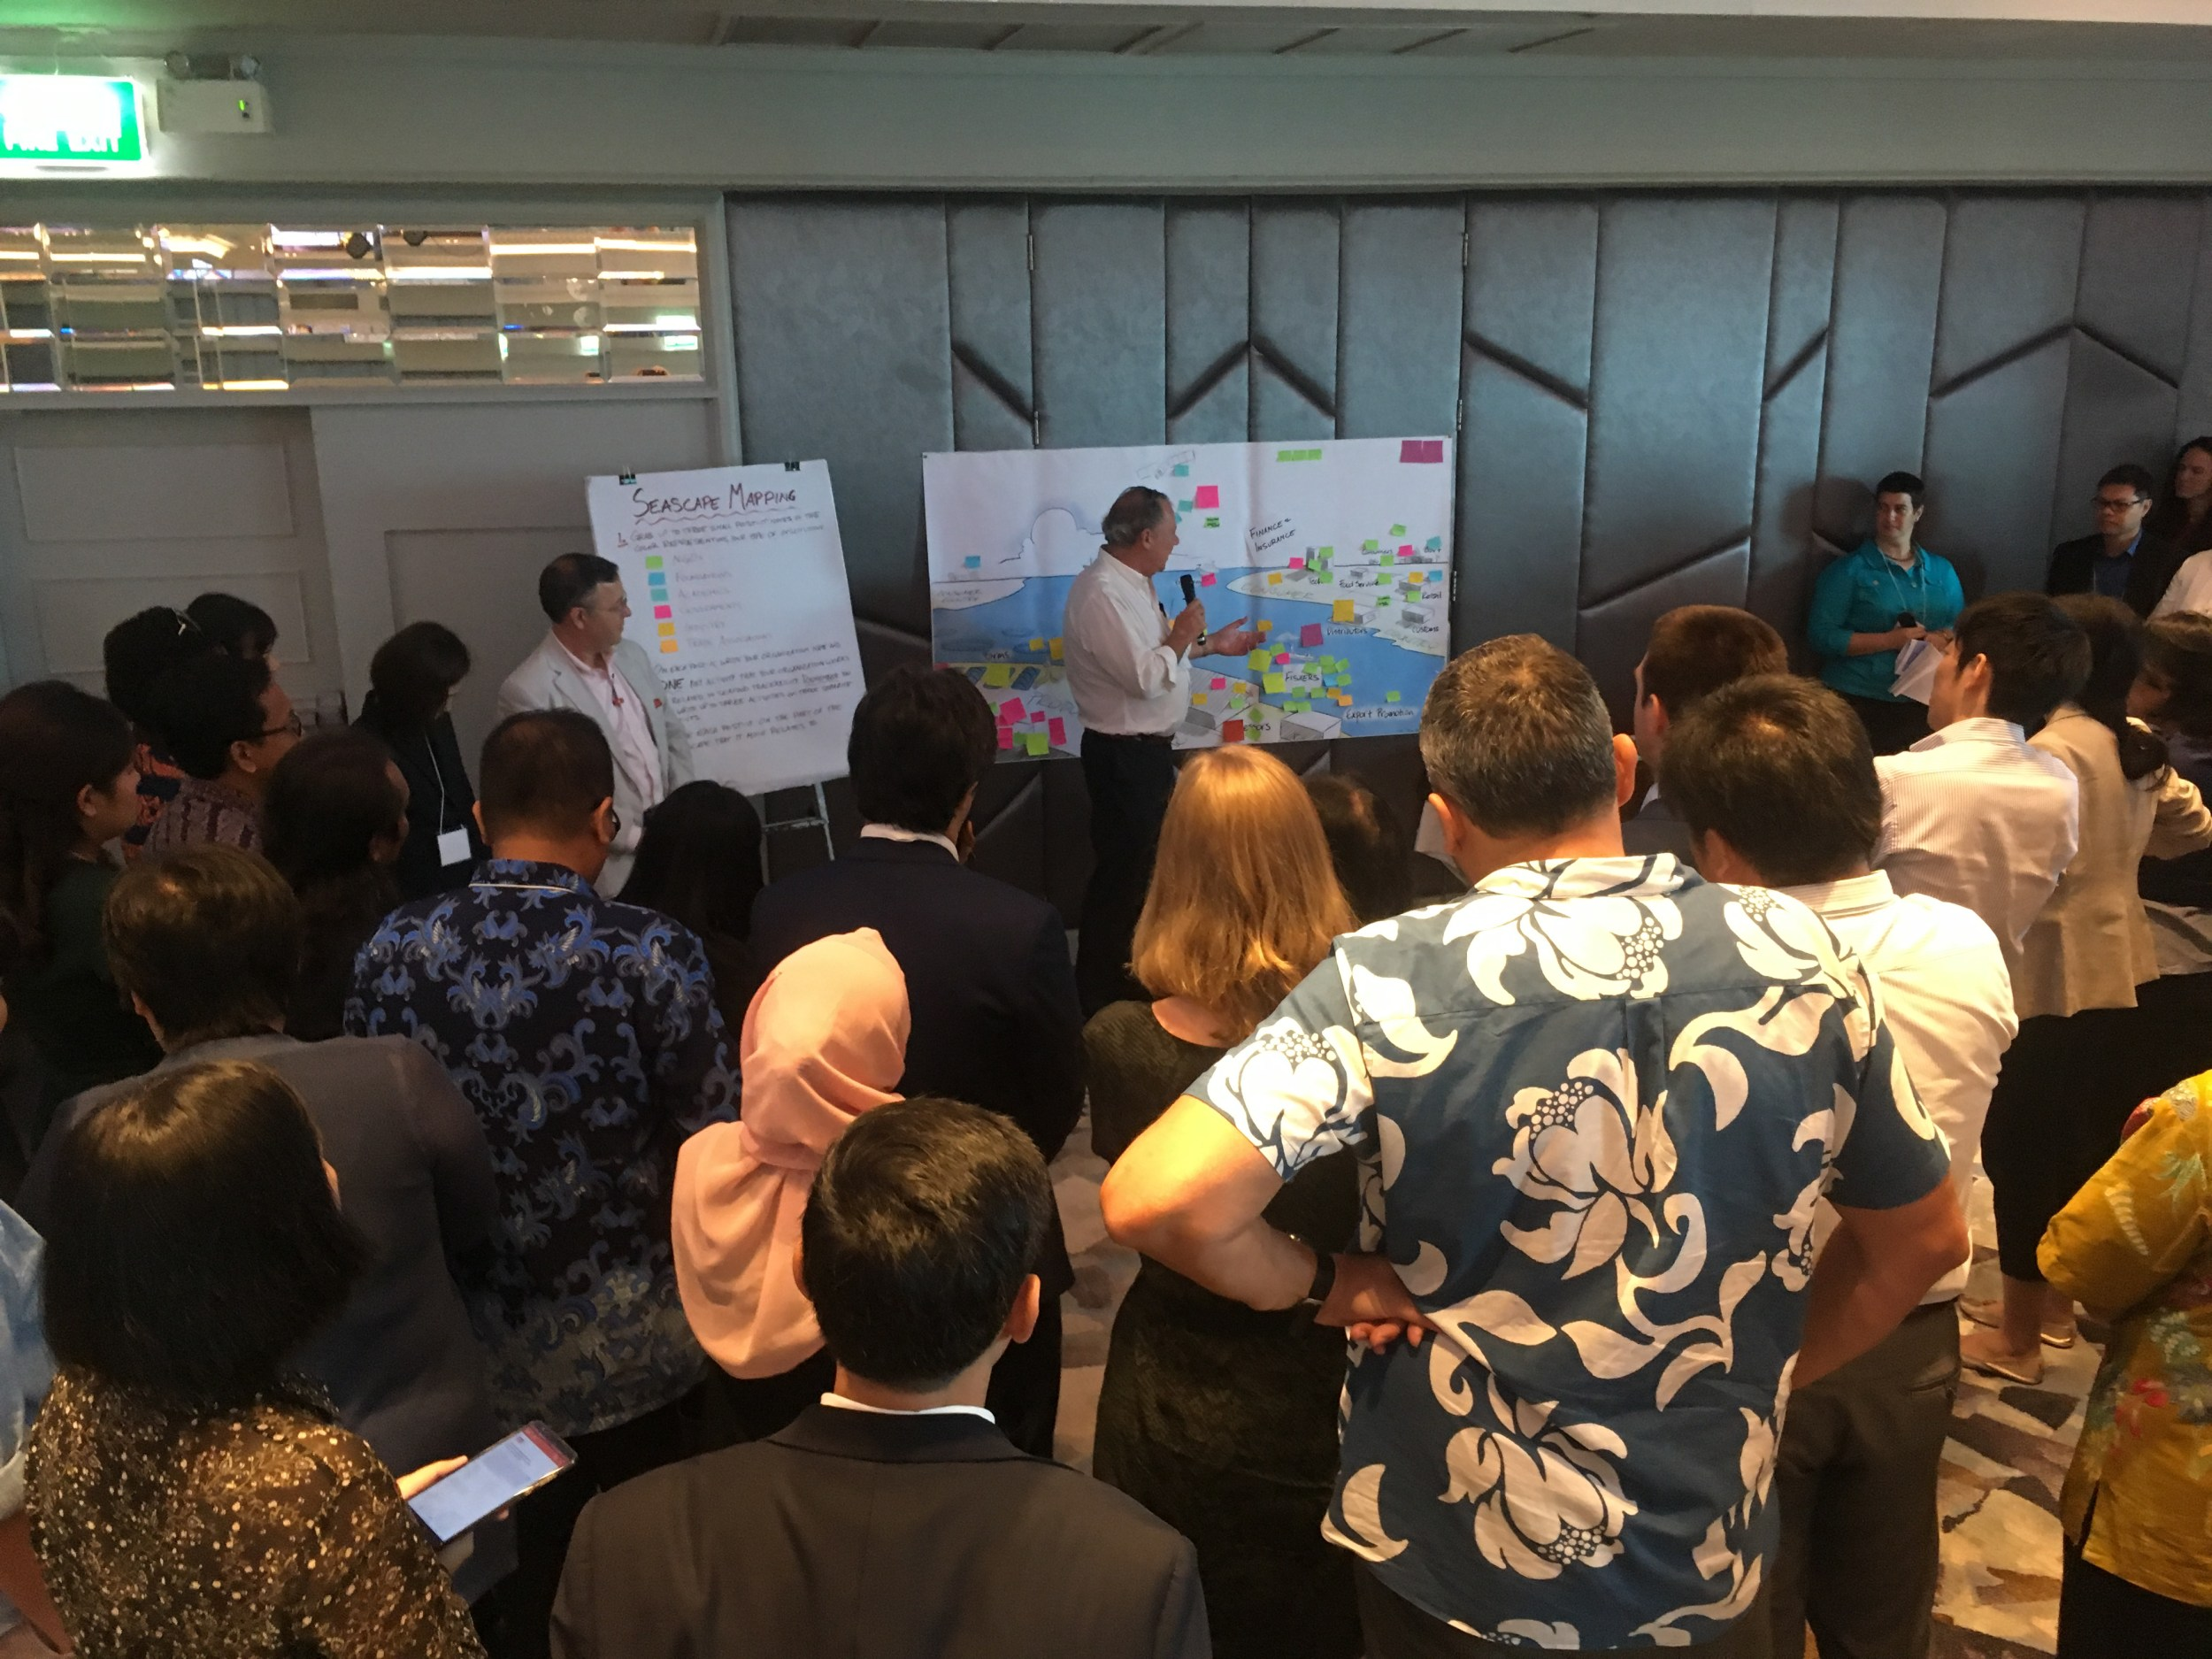 Participants at SALT's Datalab look at a drawing of the traceability seascape to discuss seascape mapping